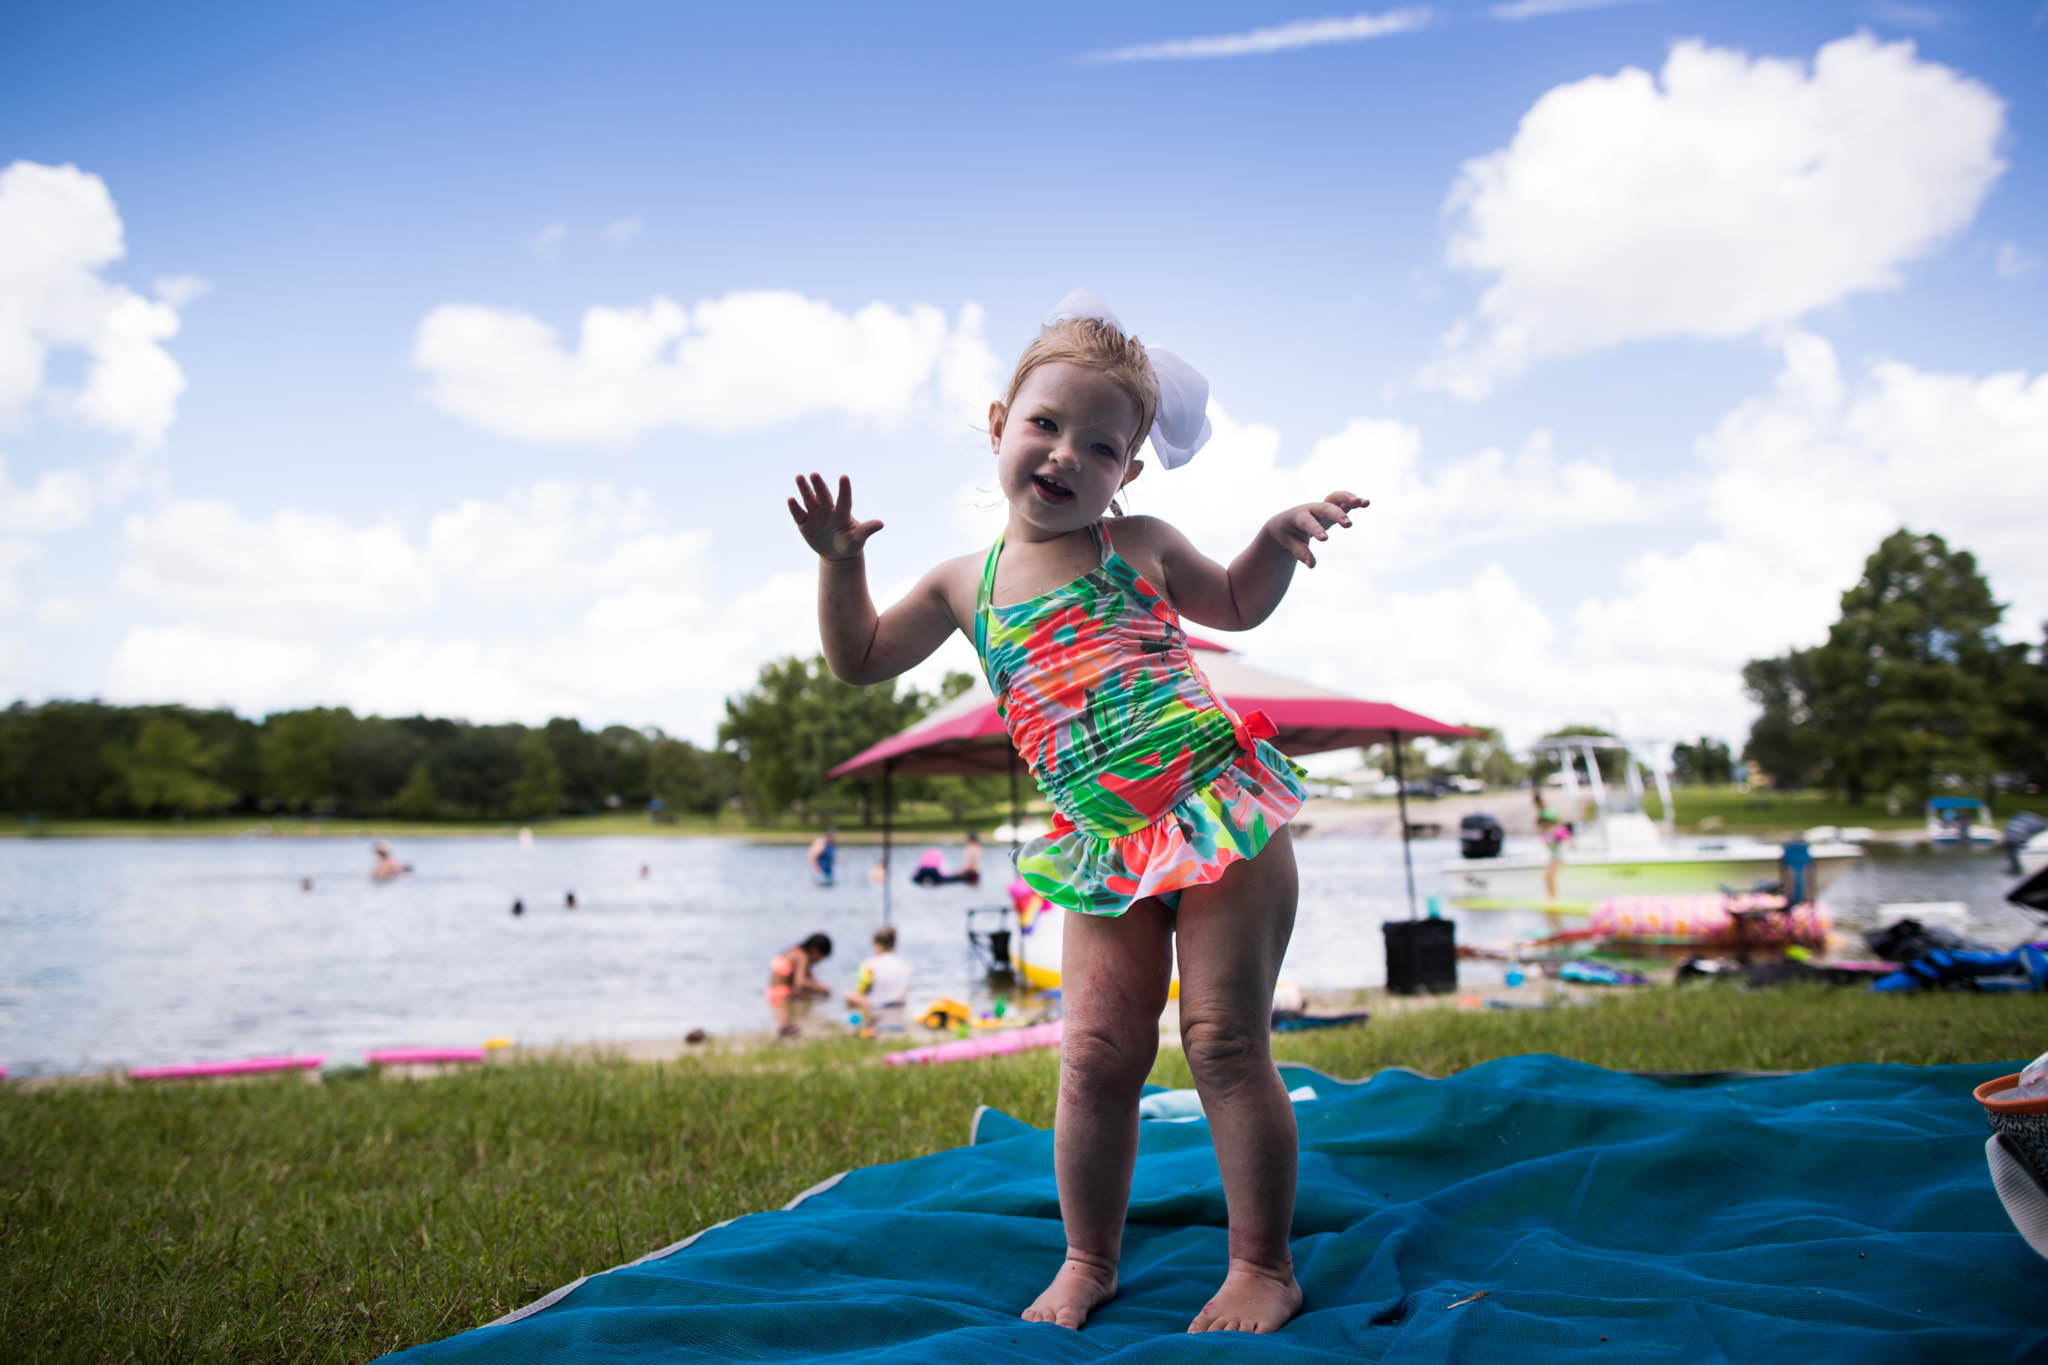 Lawren Rose Photography takes personal photos of her daughter in front of a lake in her swim suit dancing it up